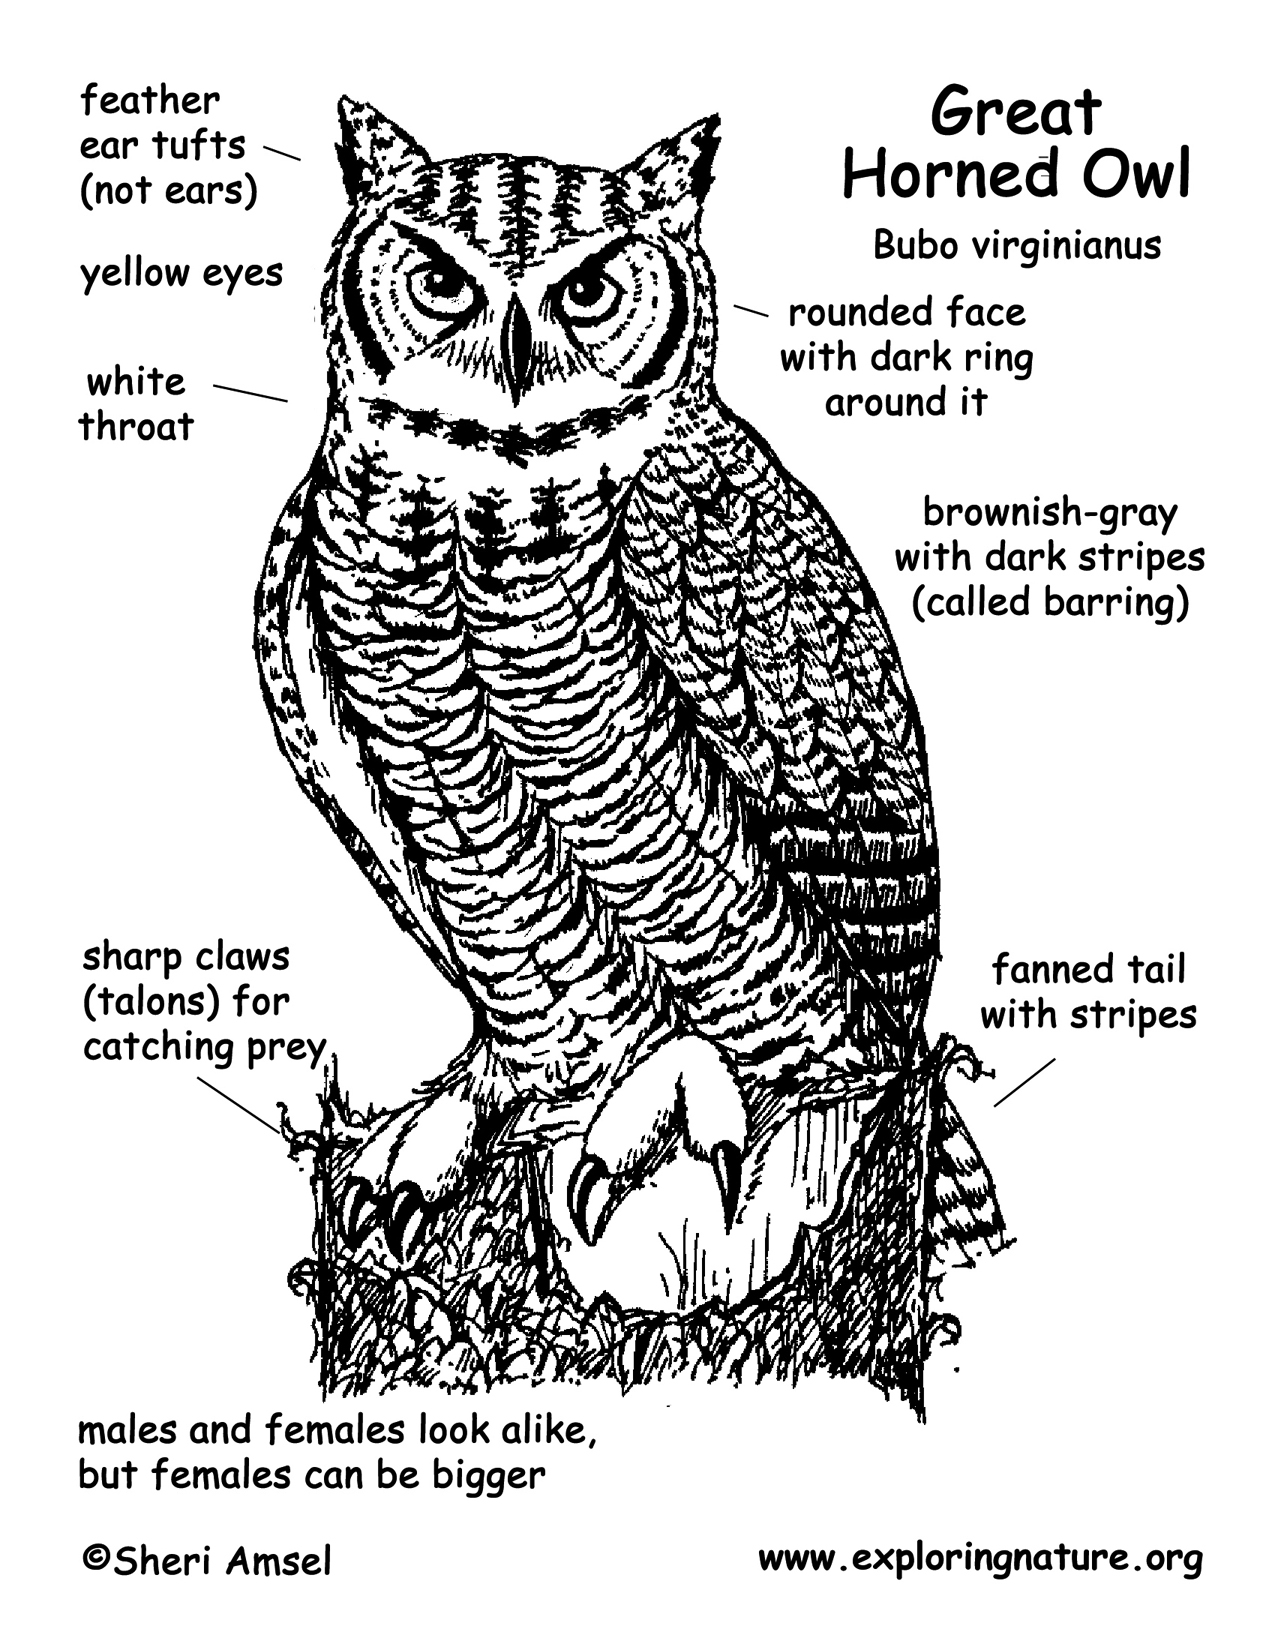 great horned owl coloring pages - photo#19